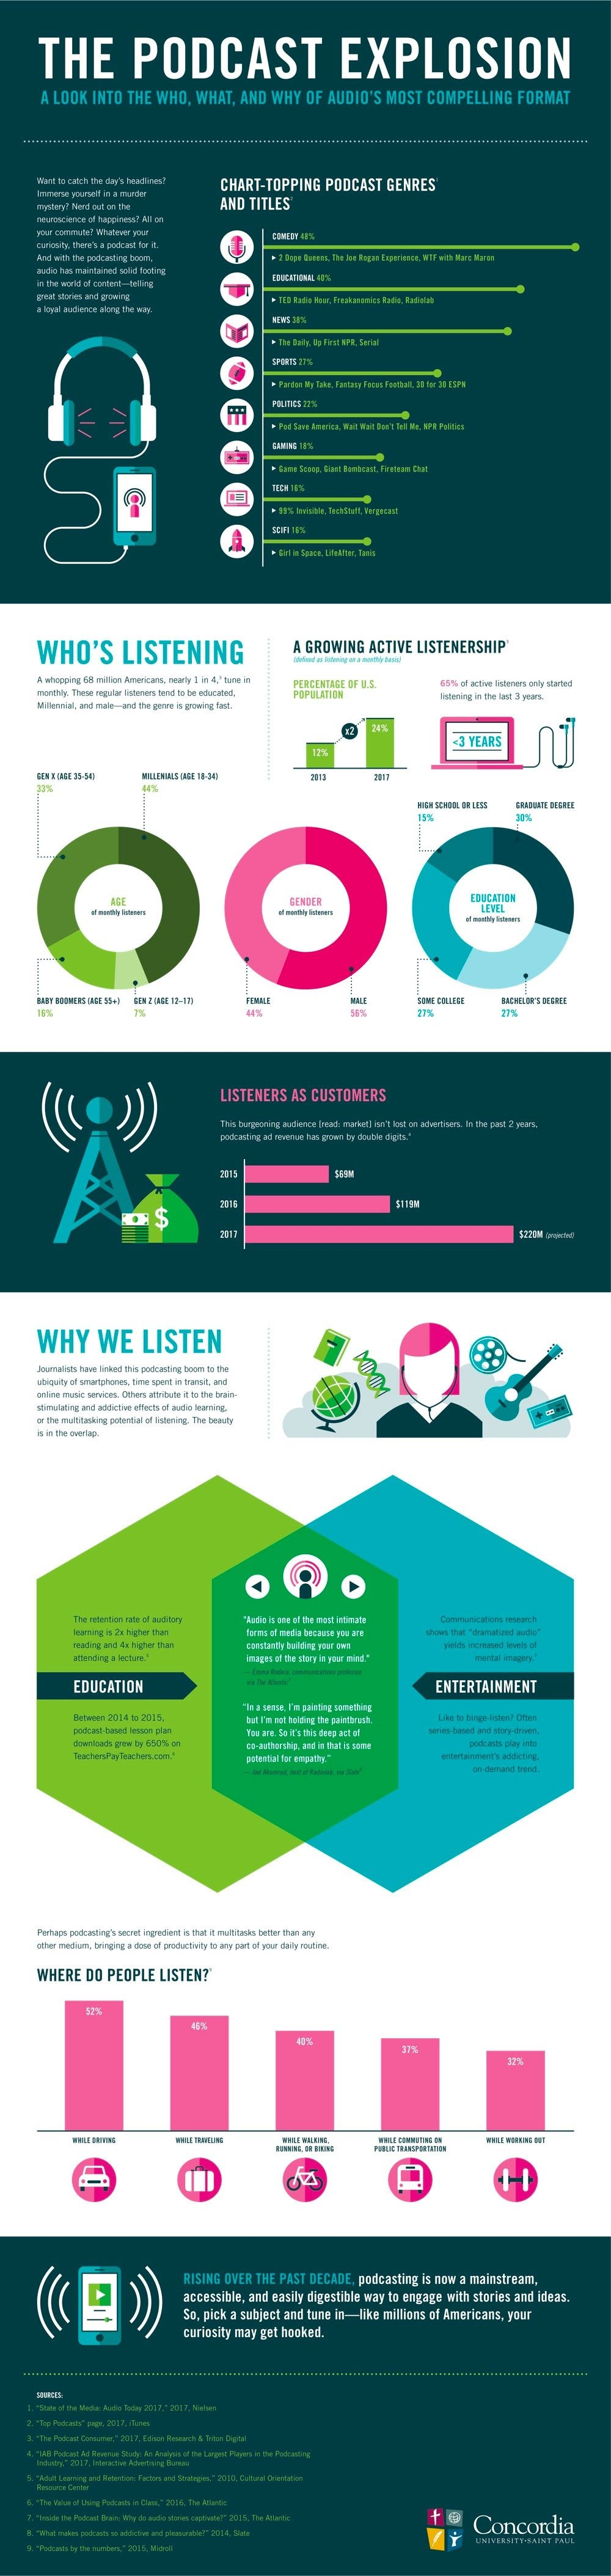 The Podcast Explosion - #infographic